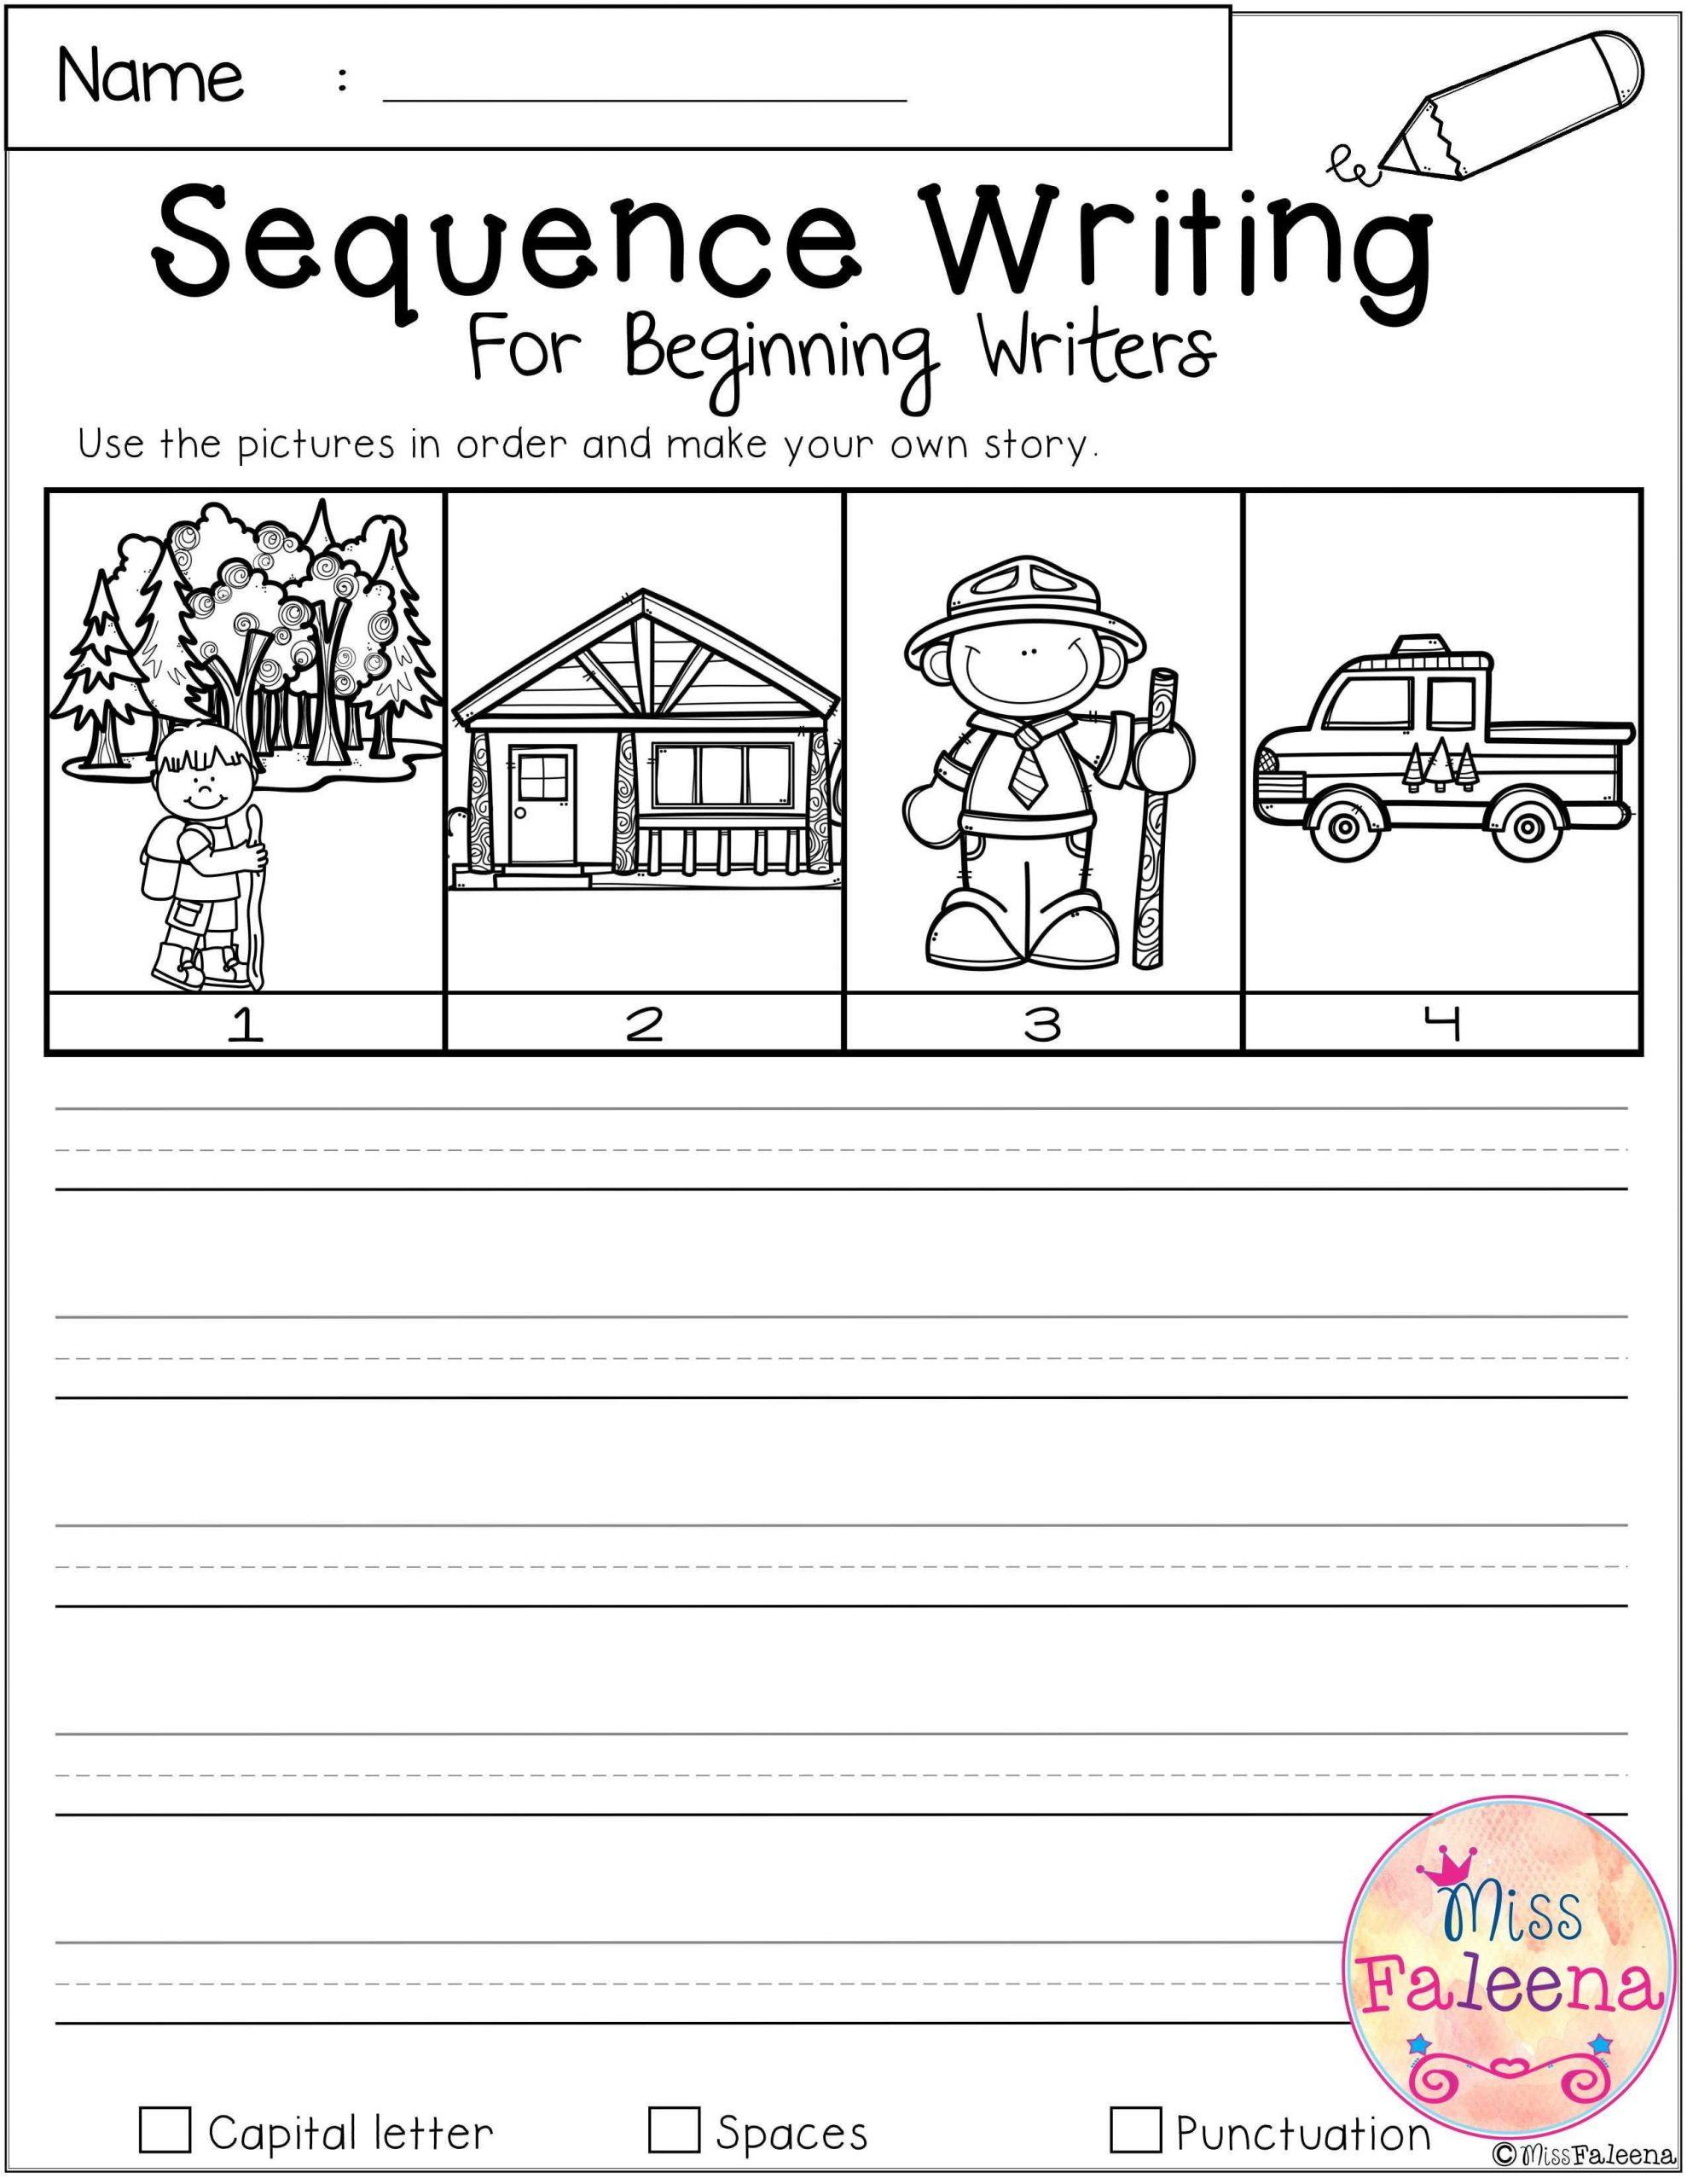 Sequencing Worksheets 4th Grade September Sequence Writing for Beginning Writers